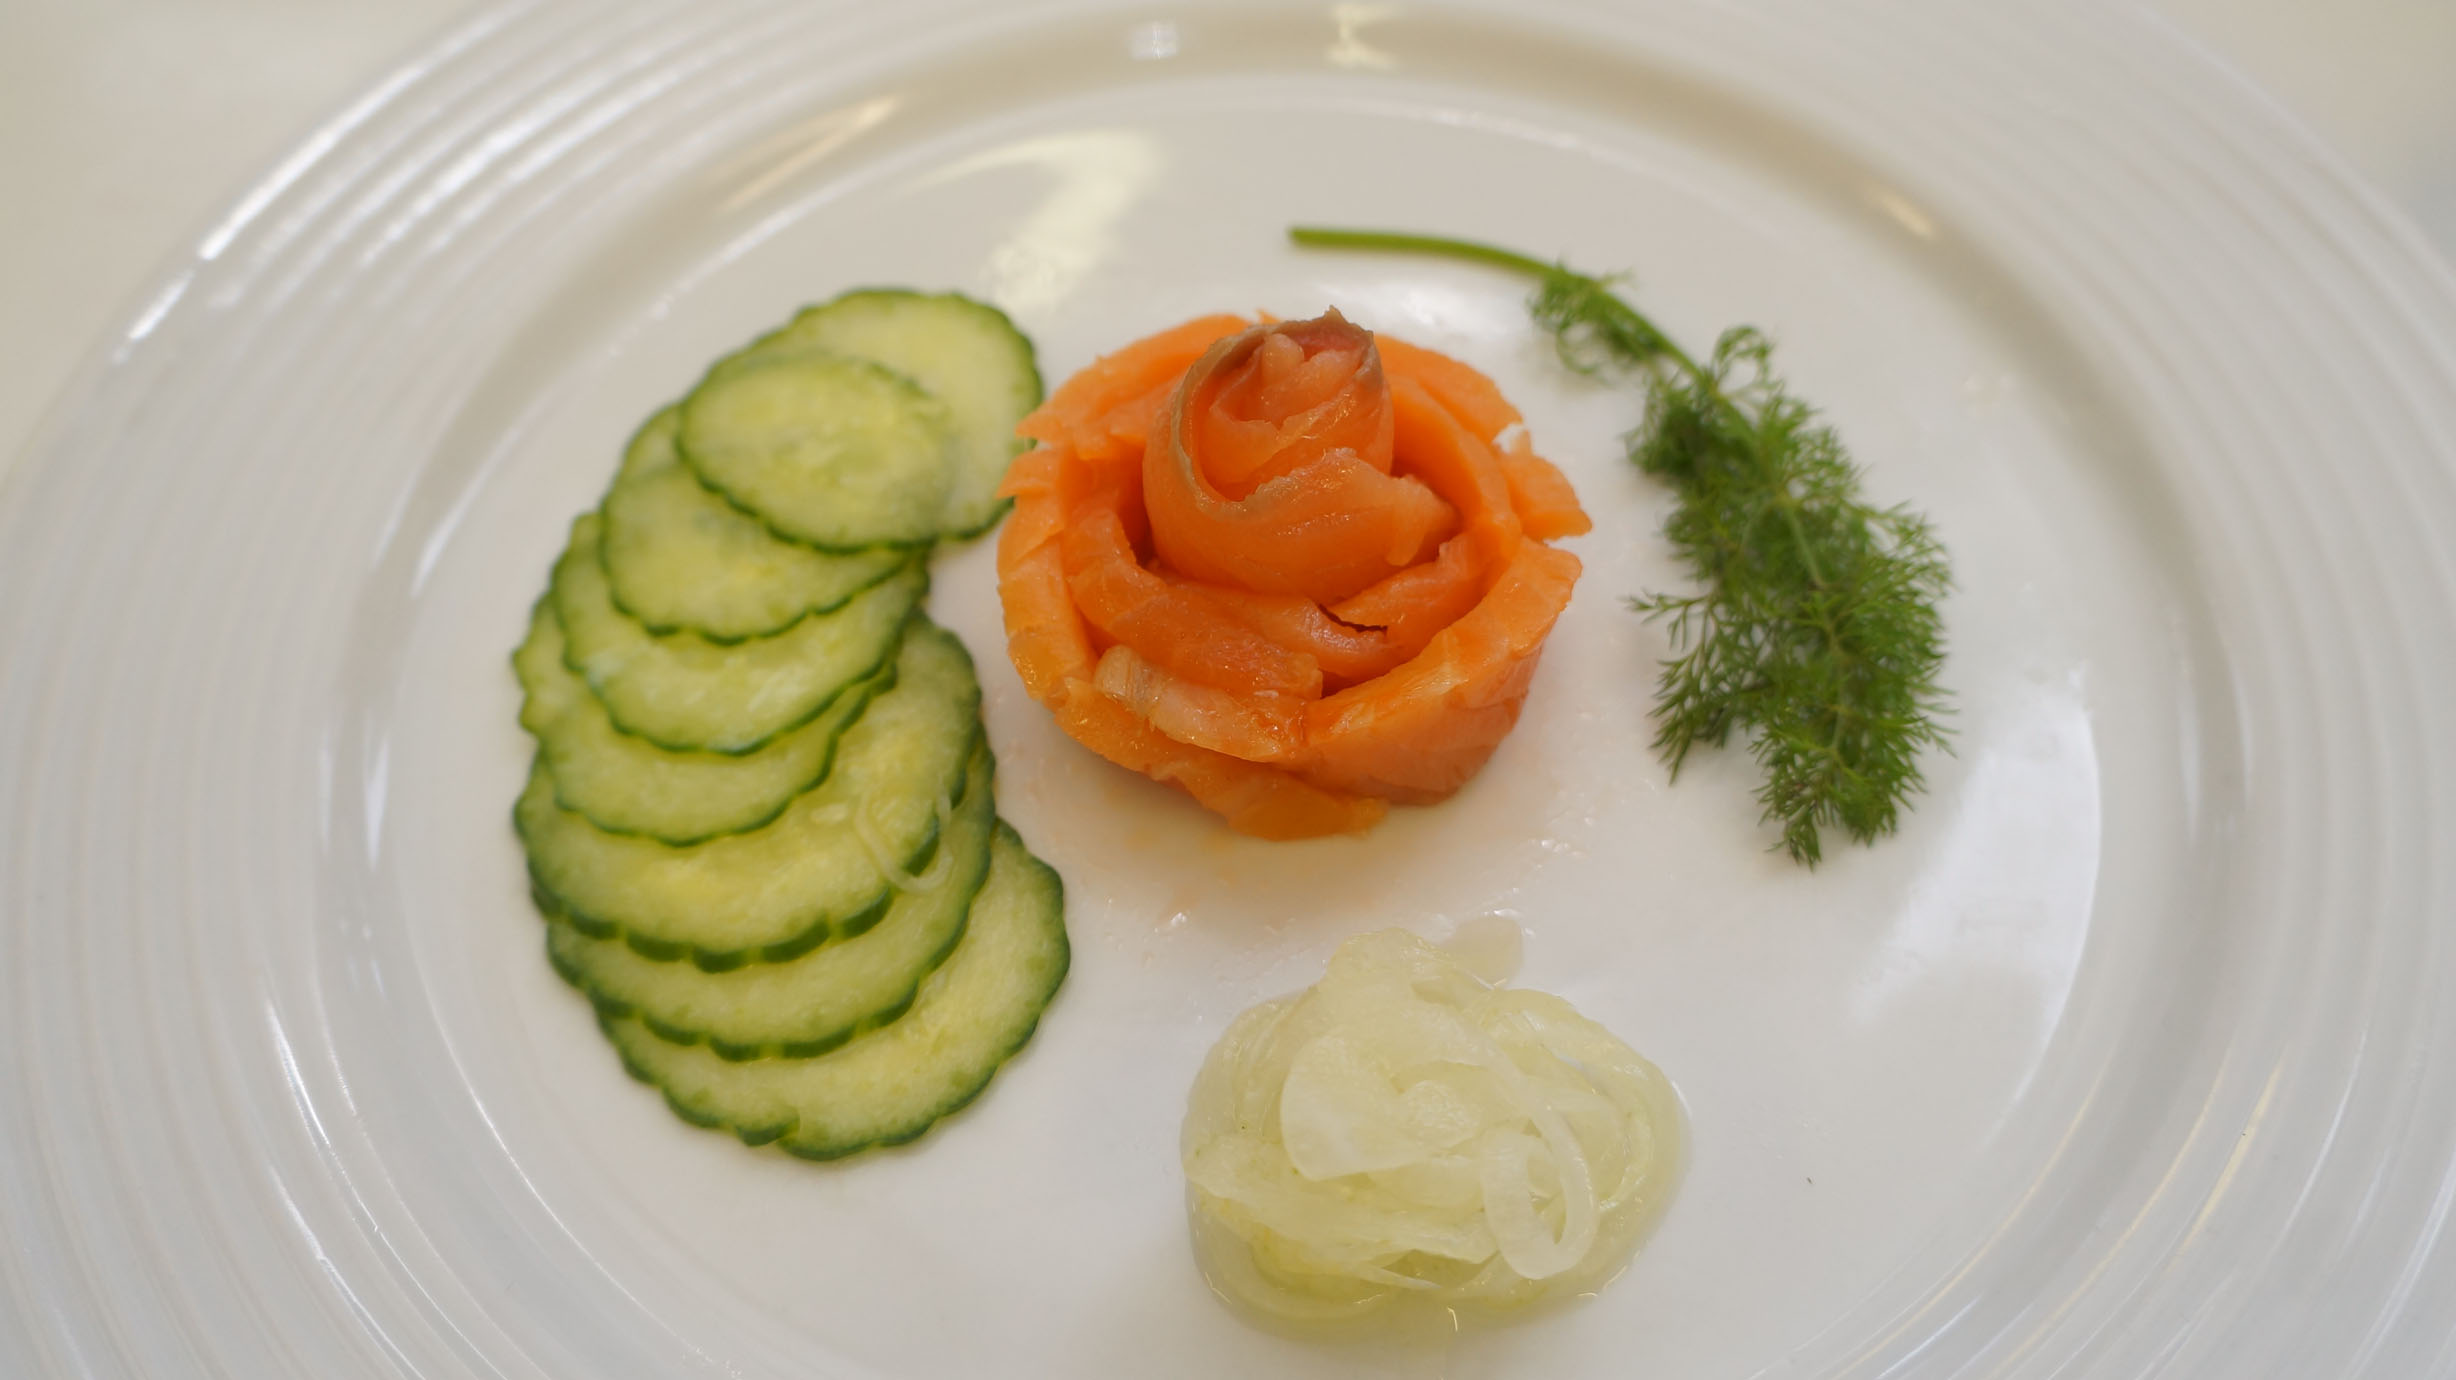 My creation!! Smoked salmon rosette with quick cucumber pickle.